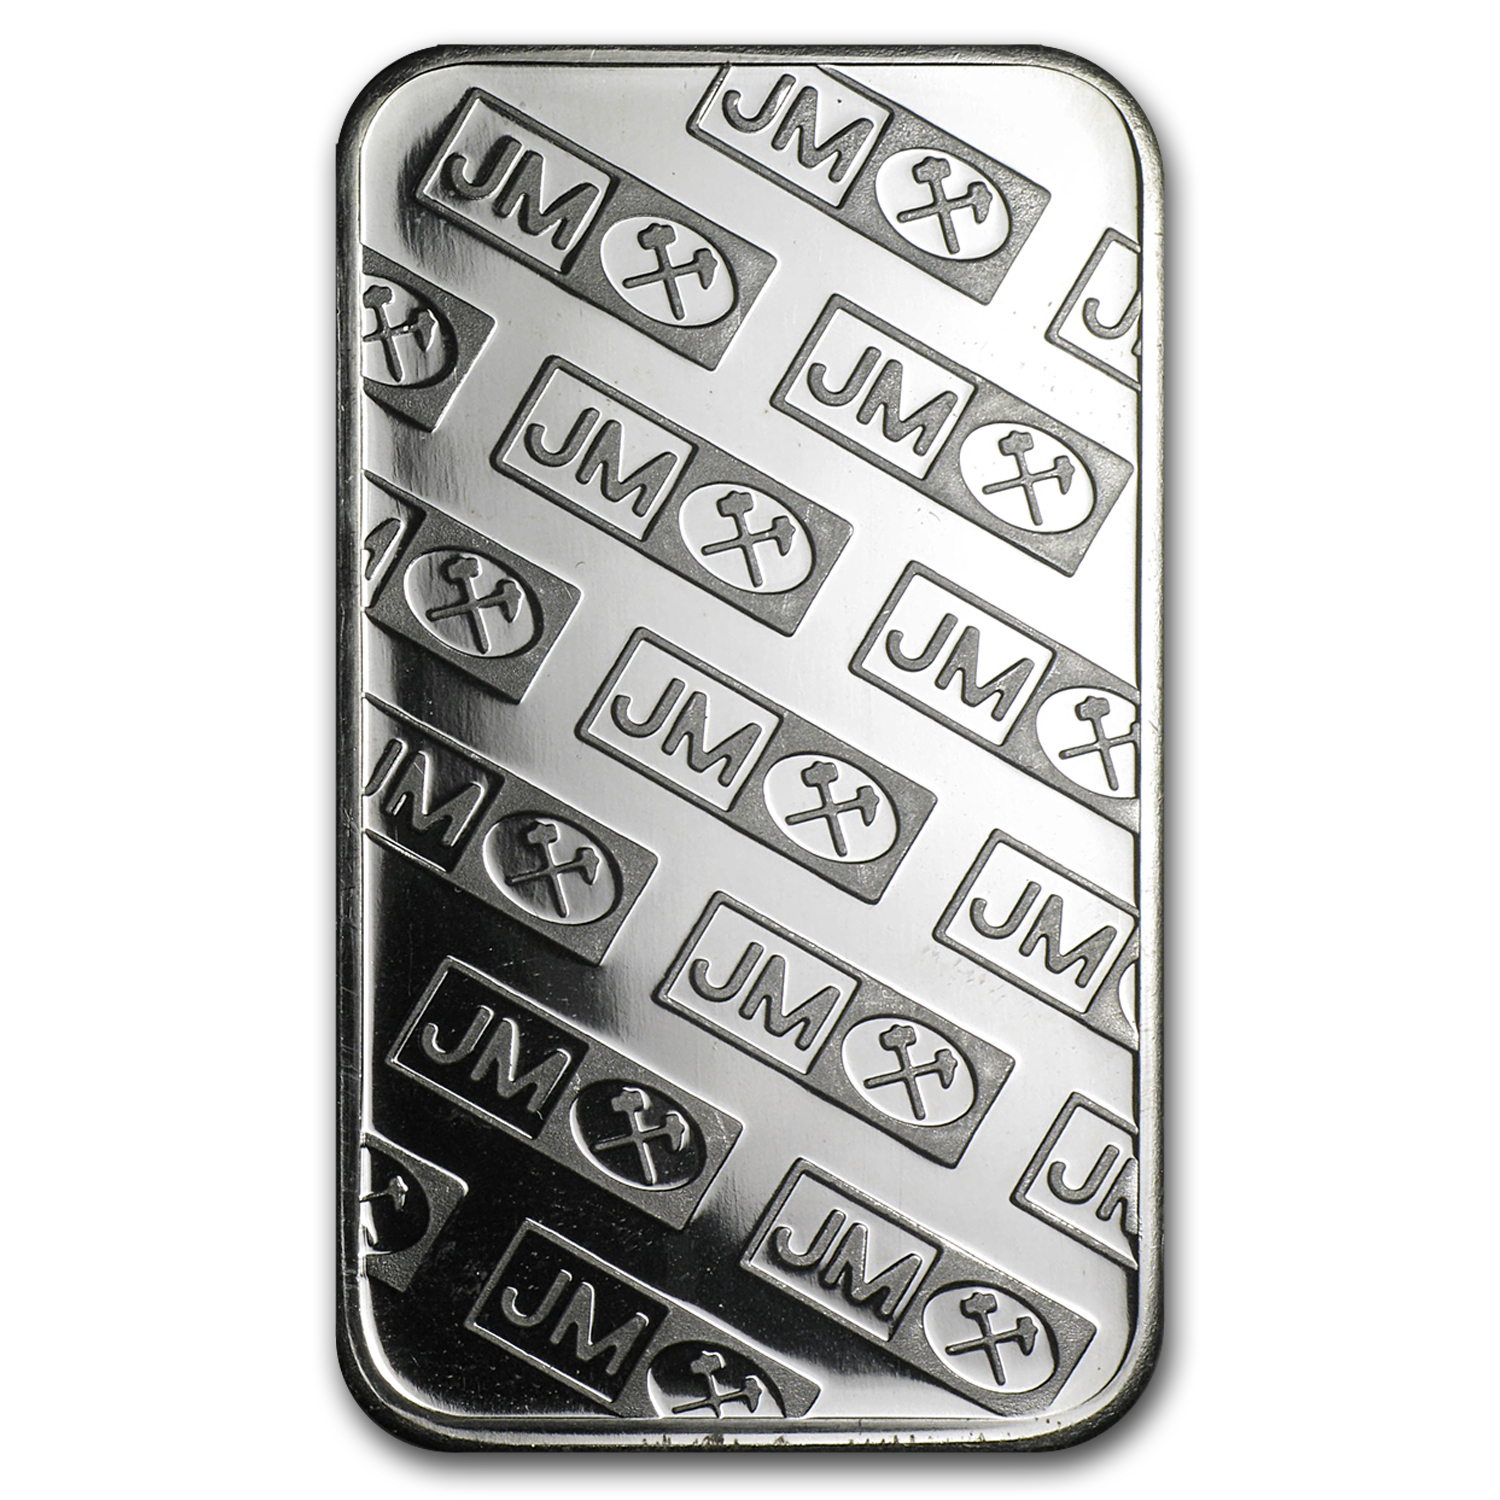 1 oz Silver Bars - Johnson Matthey (Secondary Market)